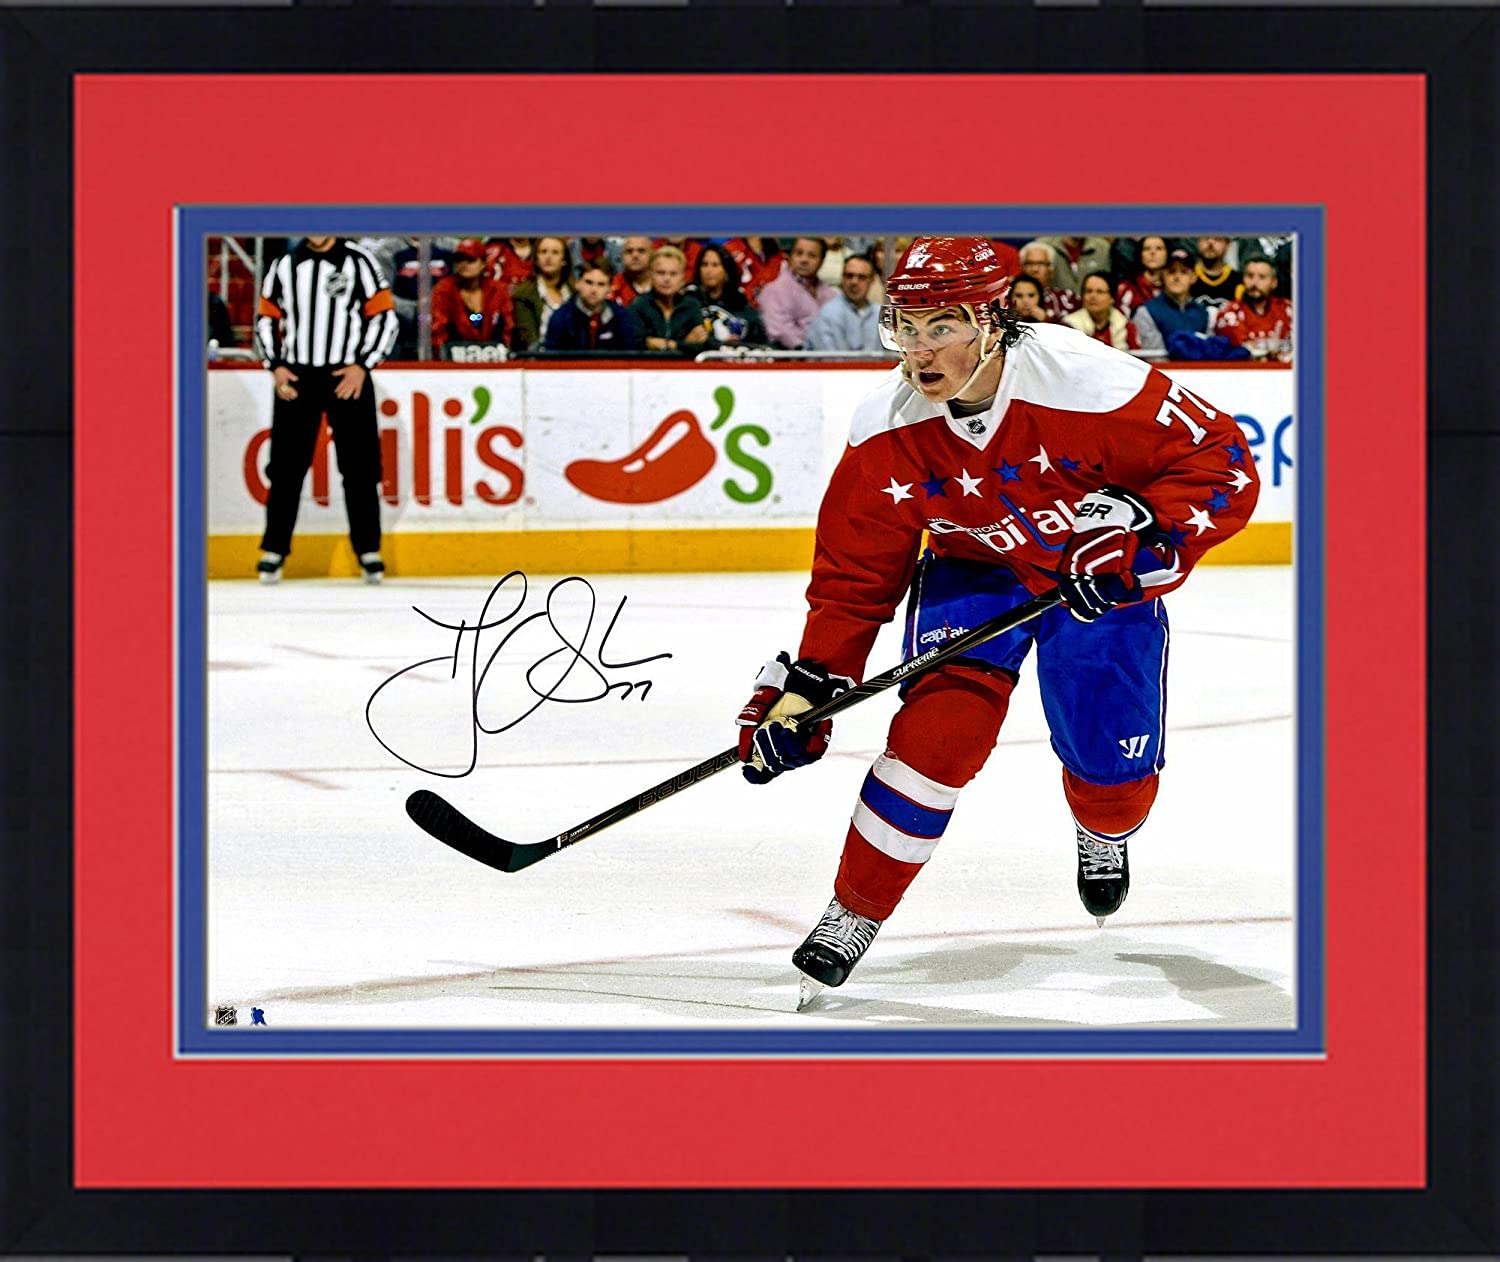 d459a9add26 Framed T.J. Oshie Washington Capitals Autographed 16